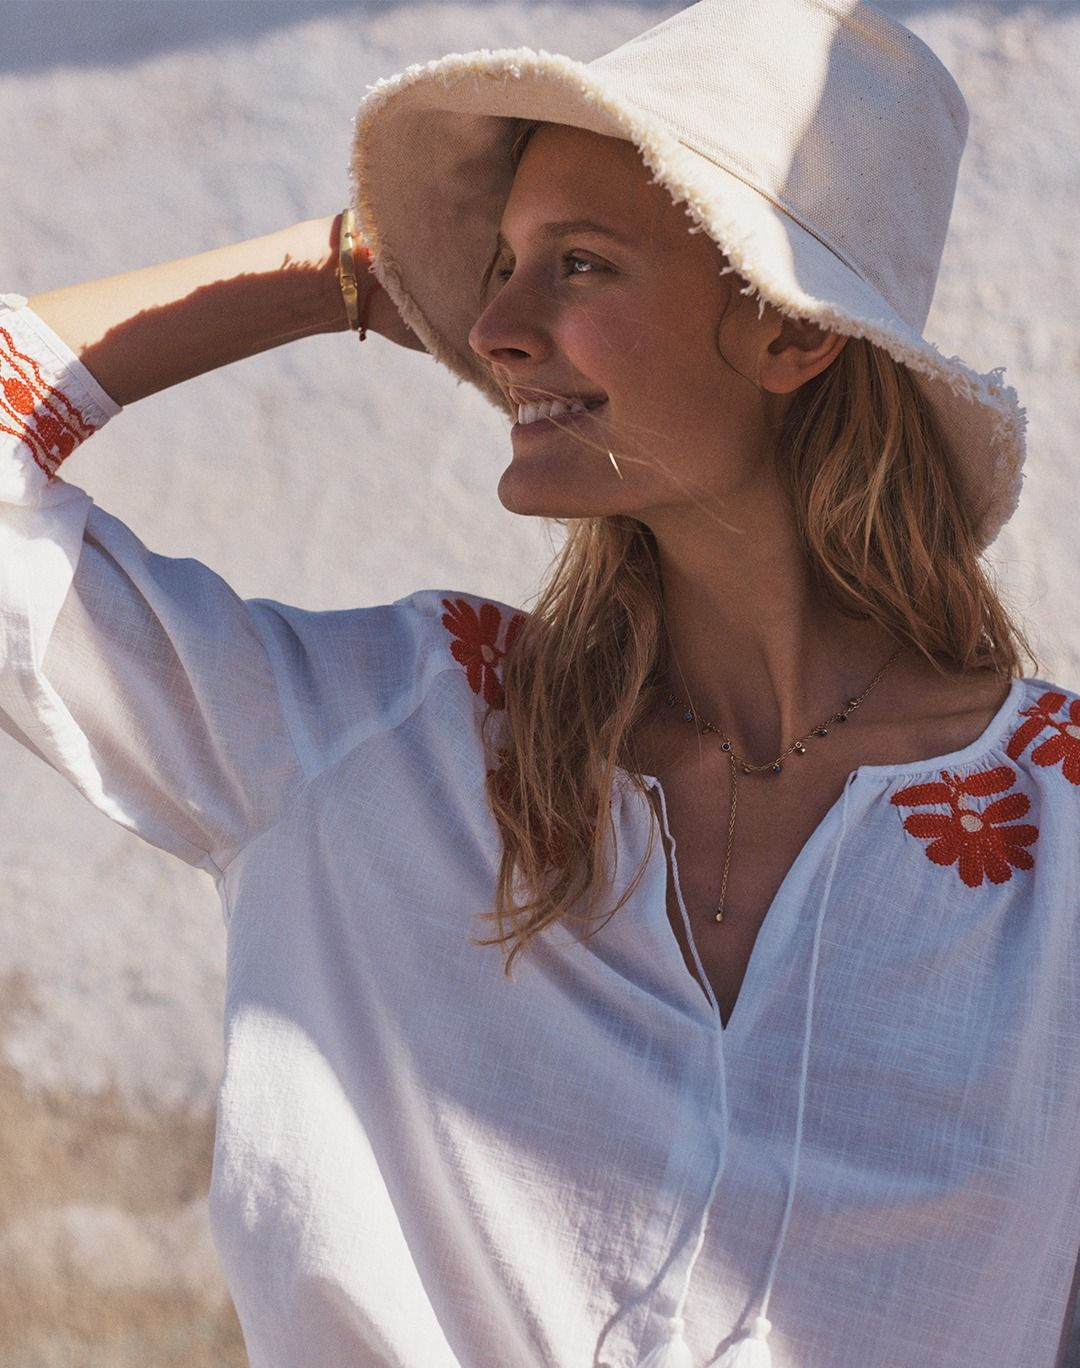 43467d3b9e madewell embroidered blanca top worn with the canvas bucket hat ...